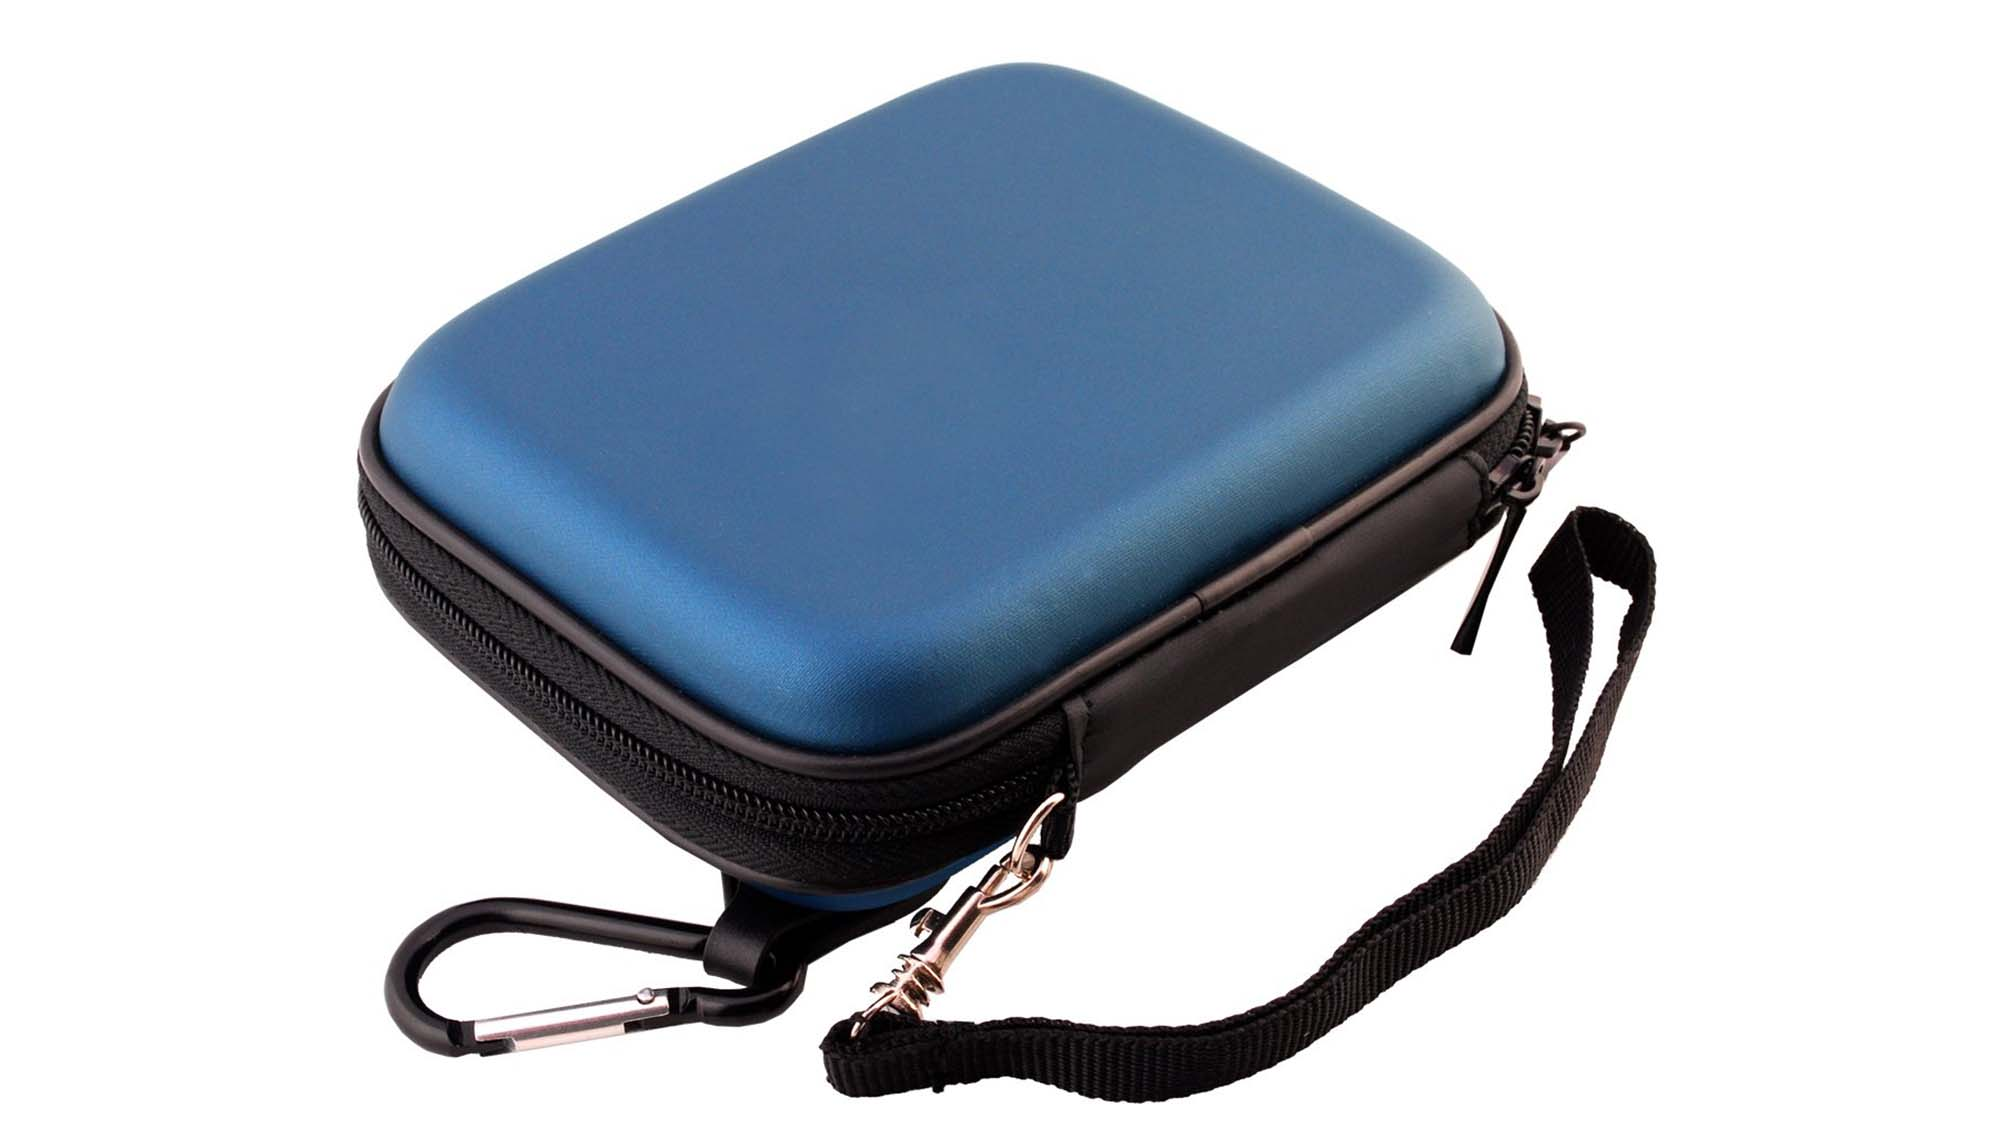 Pu leather eva shockproof carrying case for hard drive-5